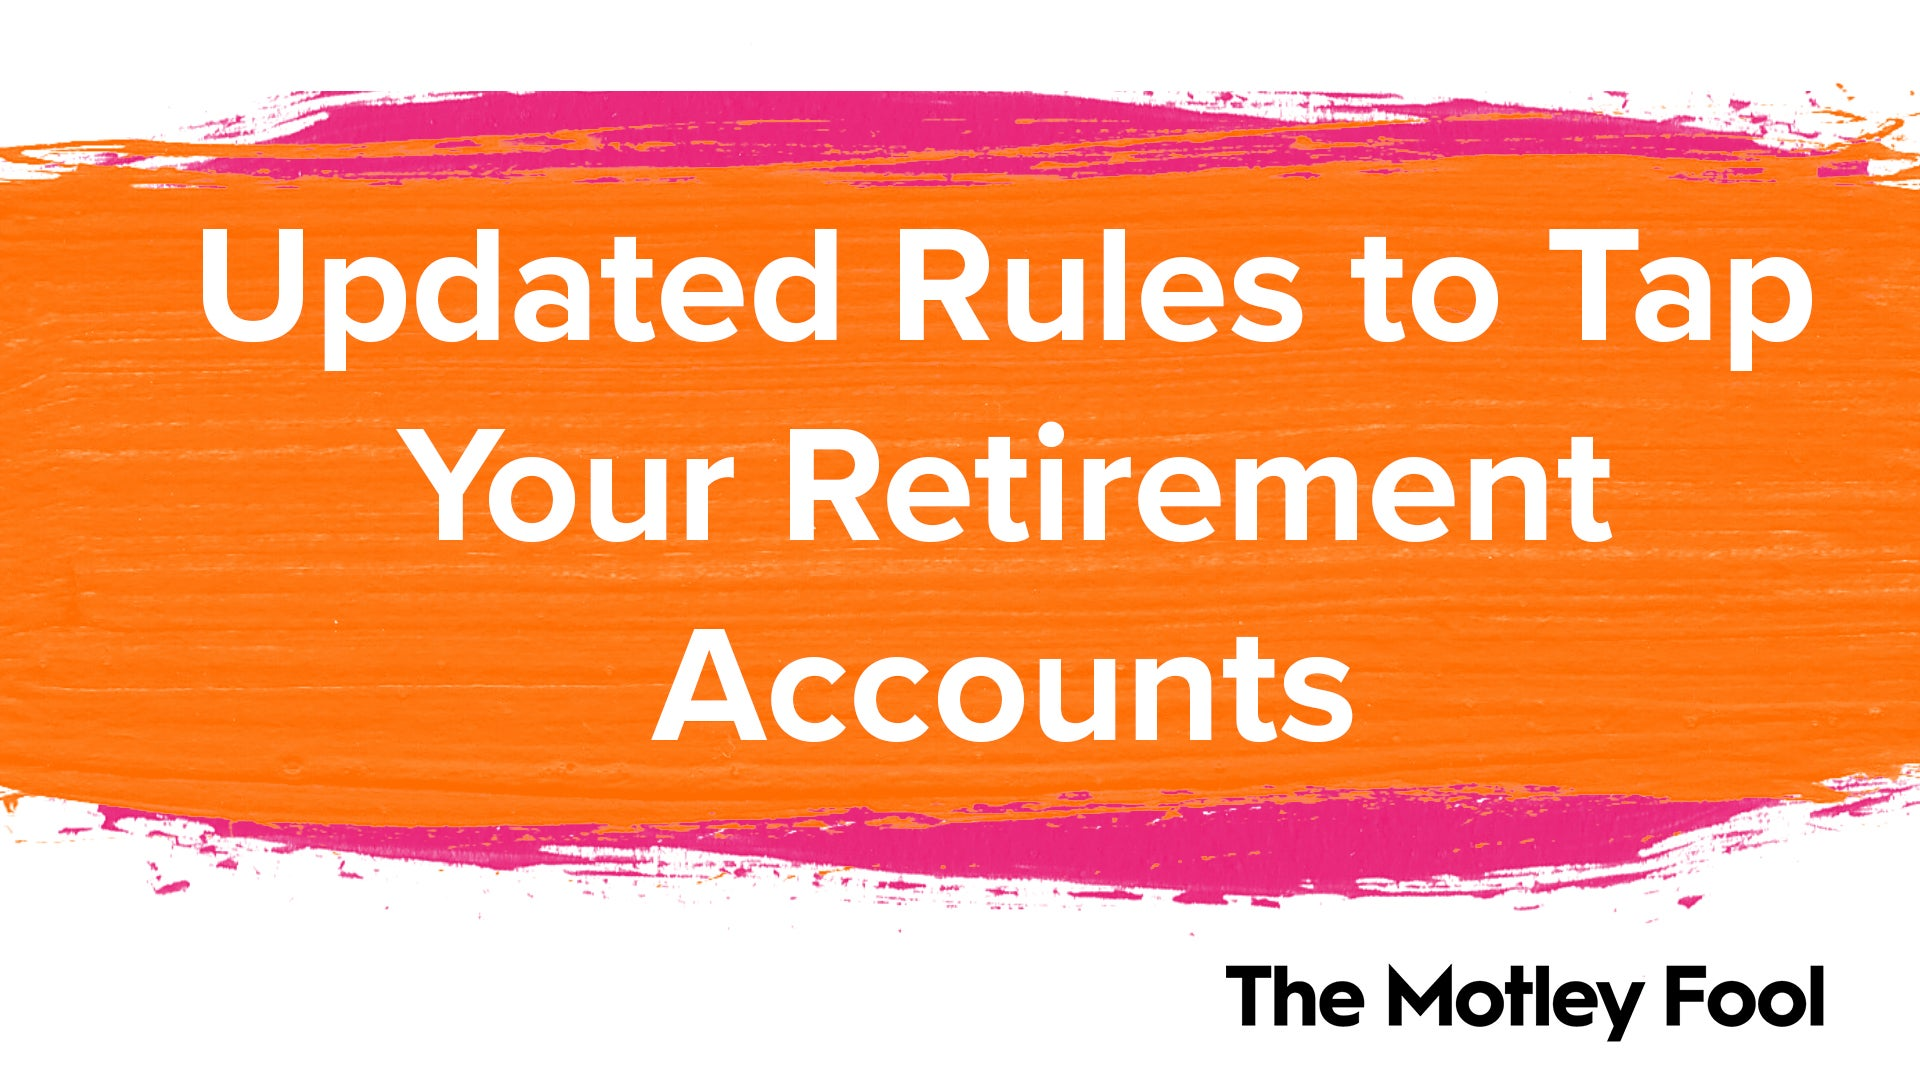 You Must Know These Updated Rules to Tap Your Retirement Accounts